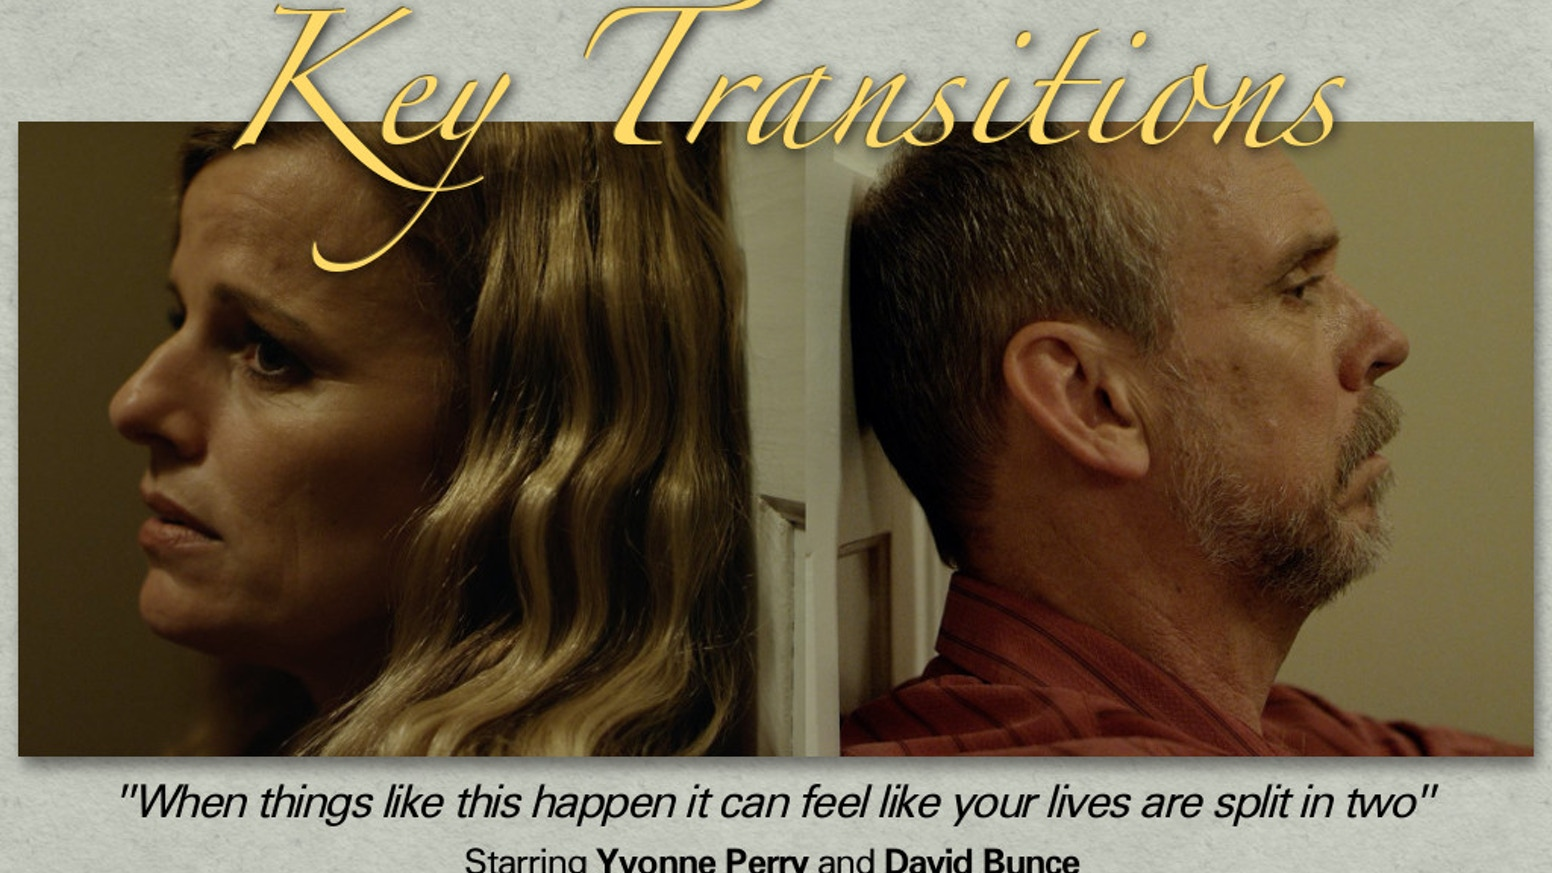 The recently completed short film KEY TRANSITIONS seeks funds to enhance its festival exposure to reach the widest public audience.